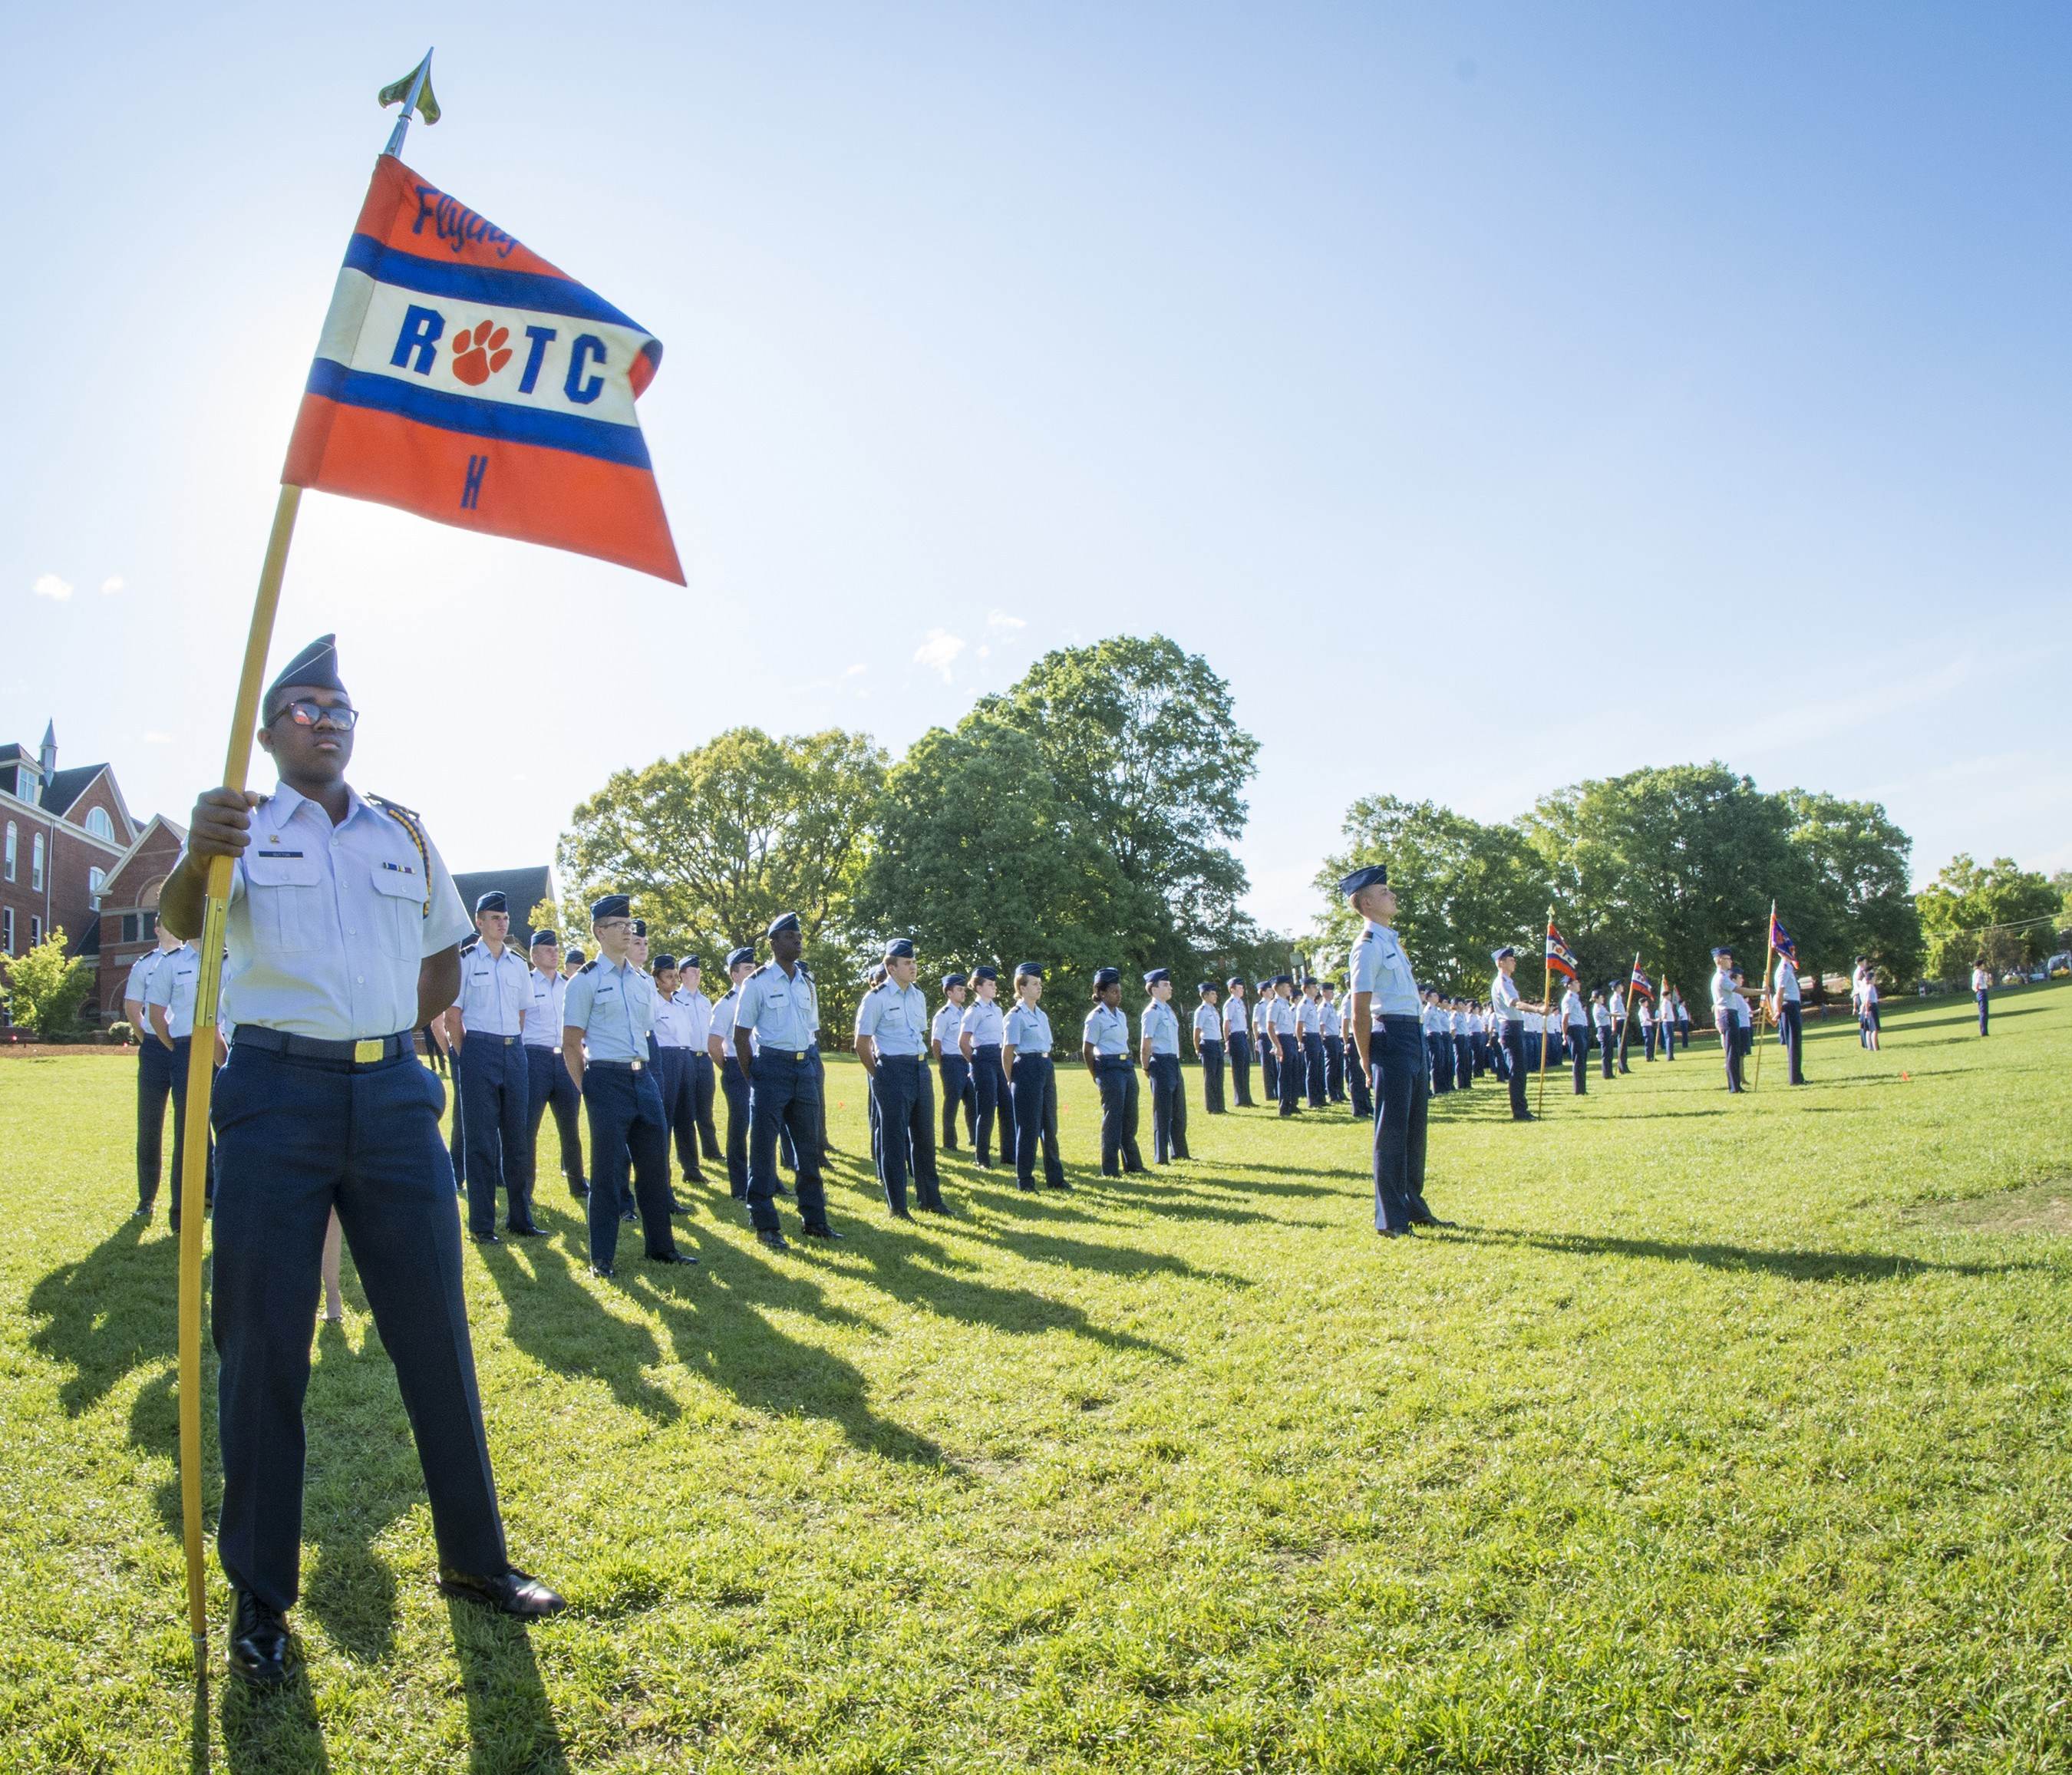 What should I do to get either the infantry or aviation branch out of Army ROTC?